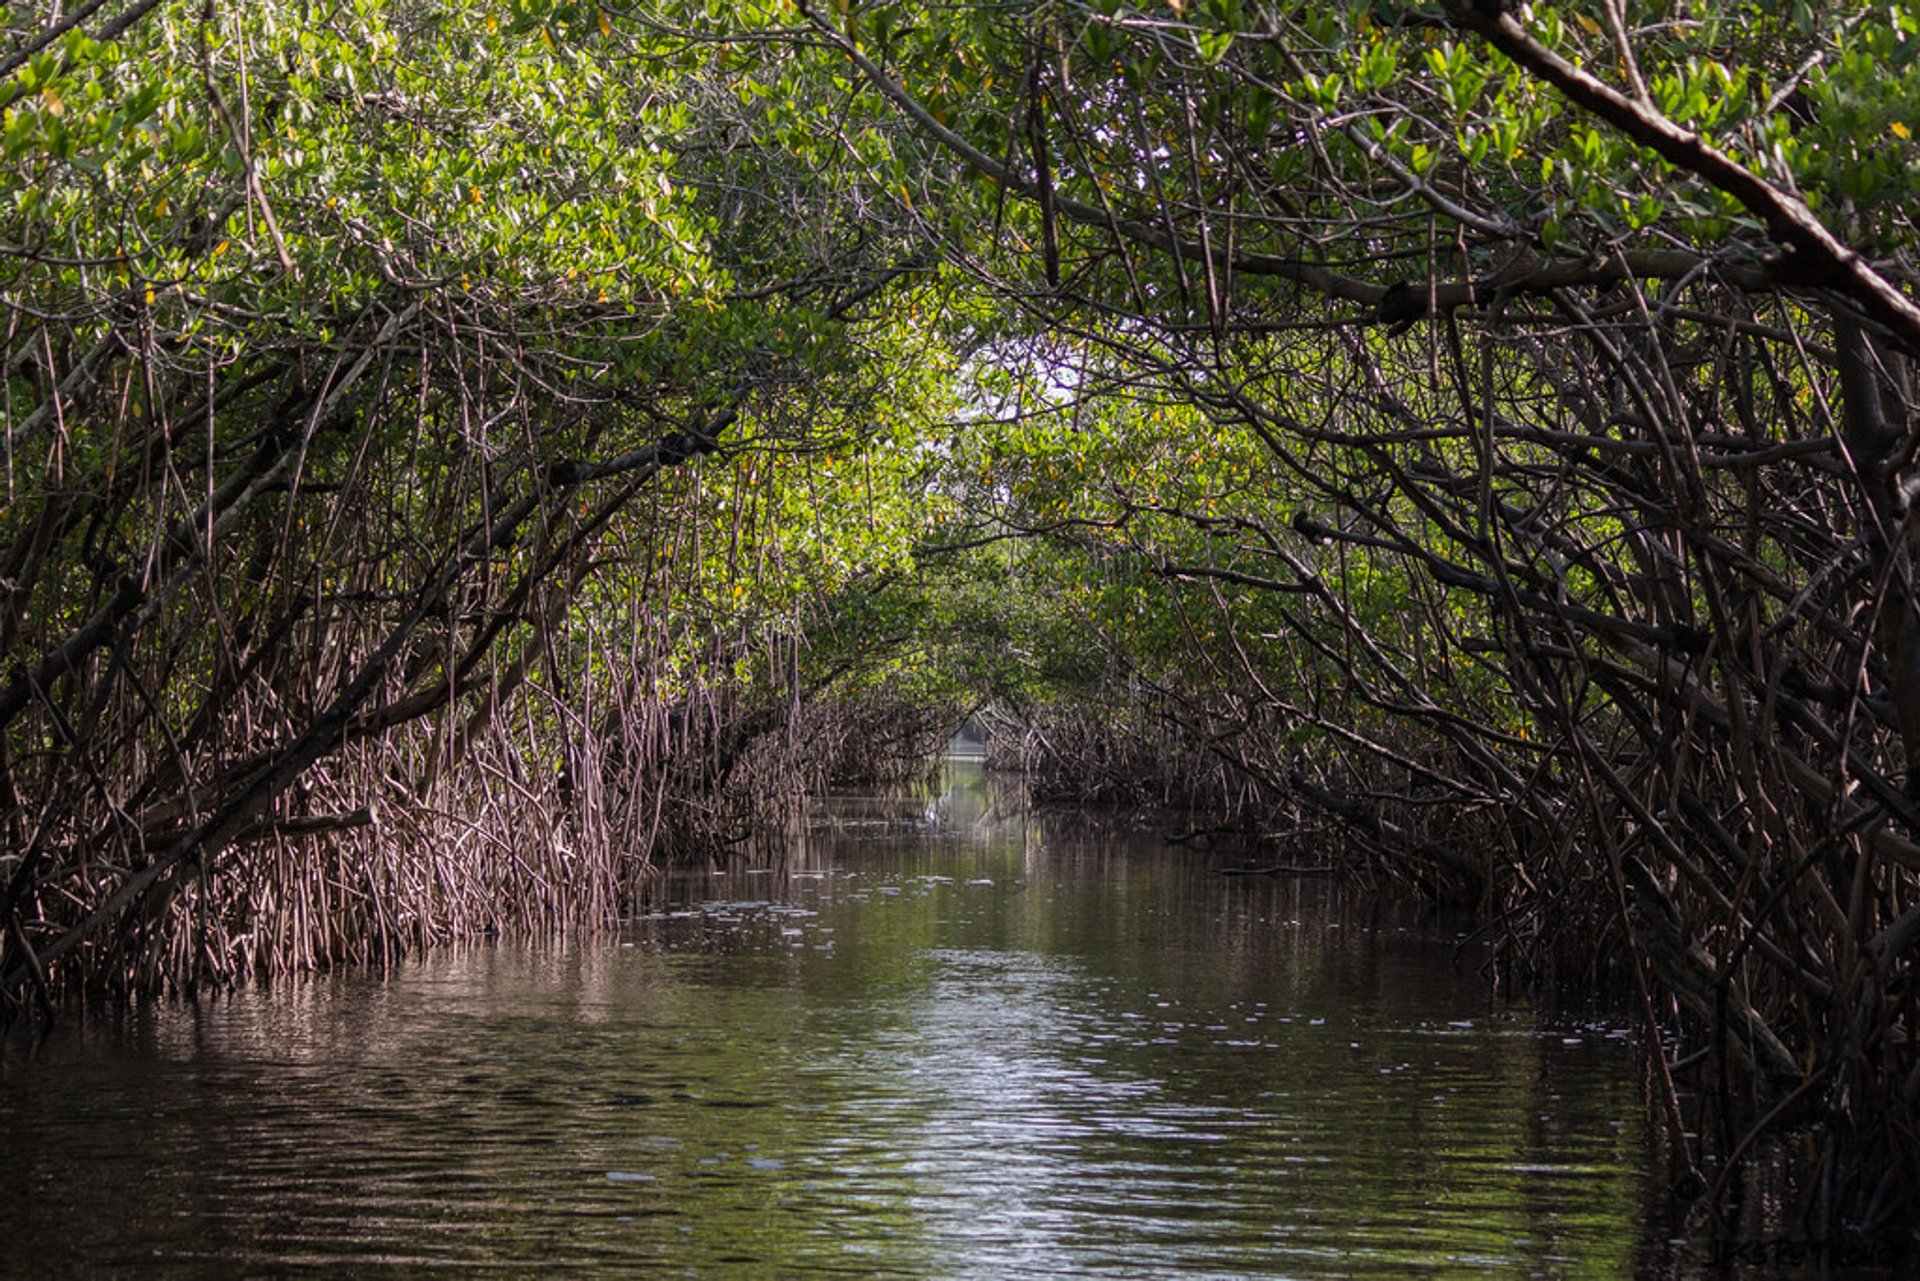 Through the mangroves 2020